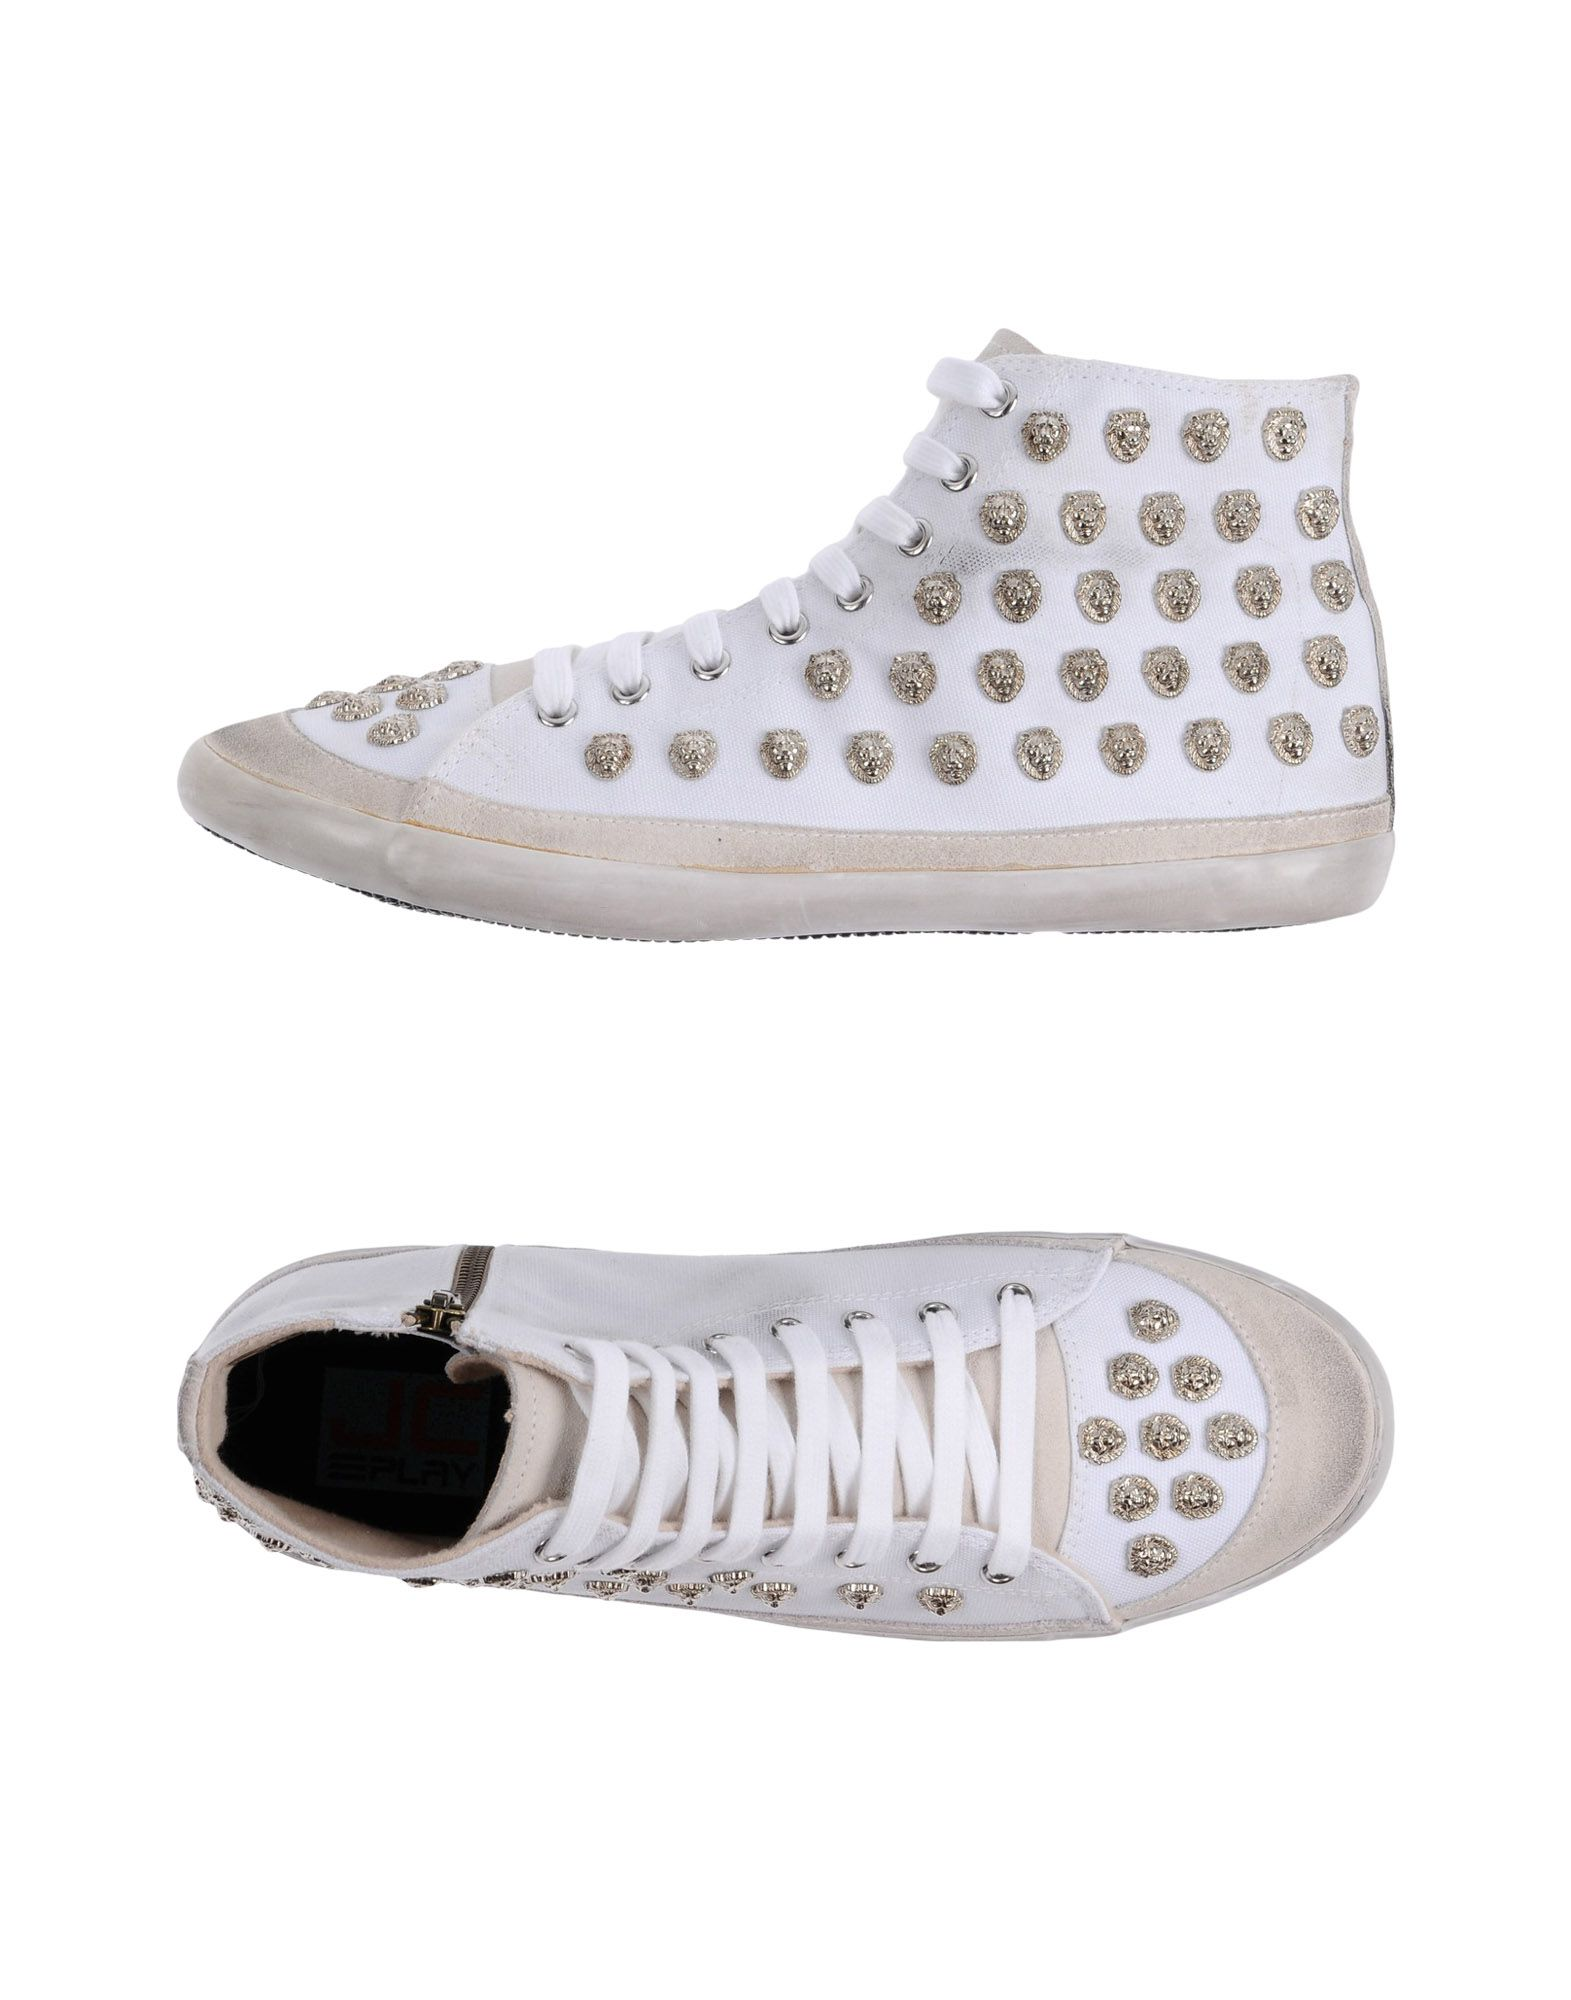 Sneakers Jc Play By Jeffrey Campbell Homme - Sneakers Jc Play By Jeffrey Campbell sur